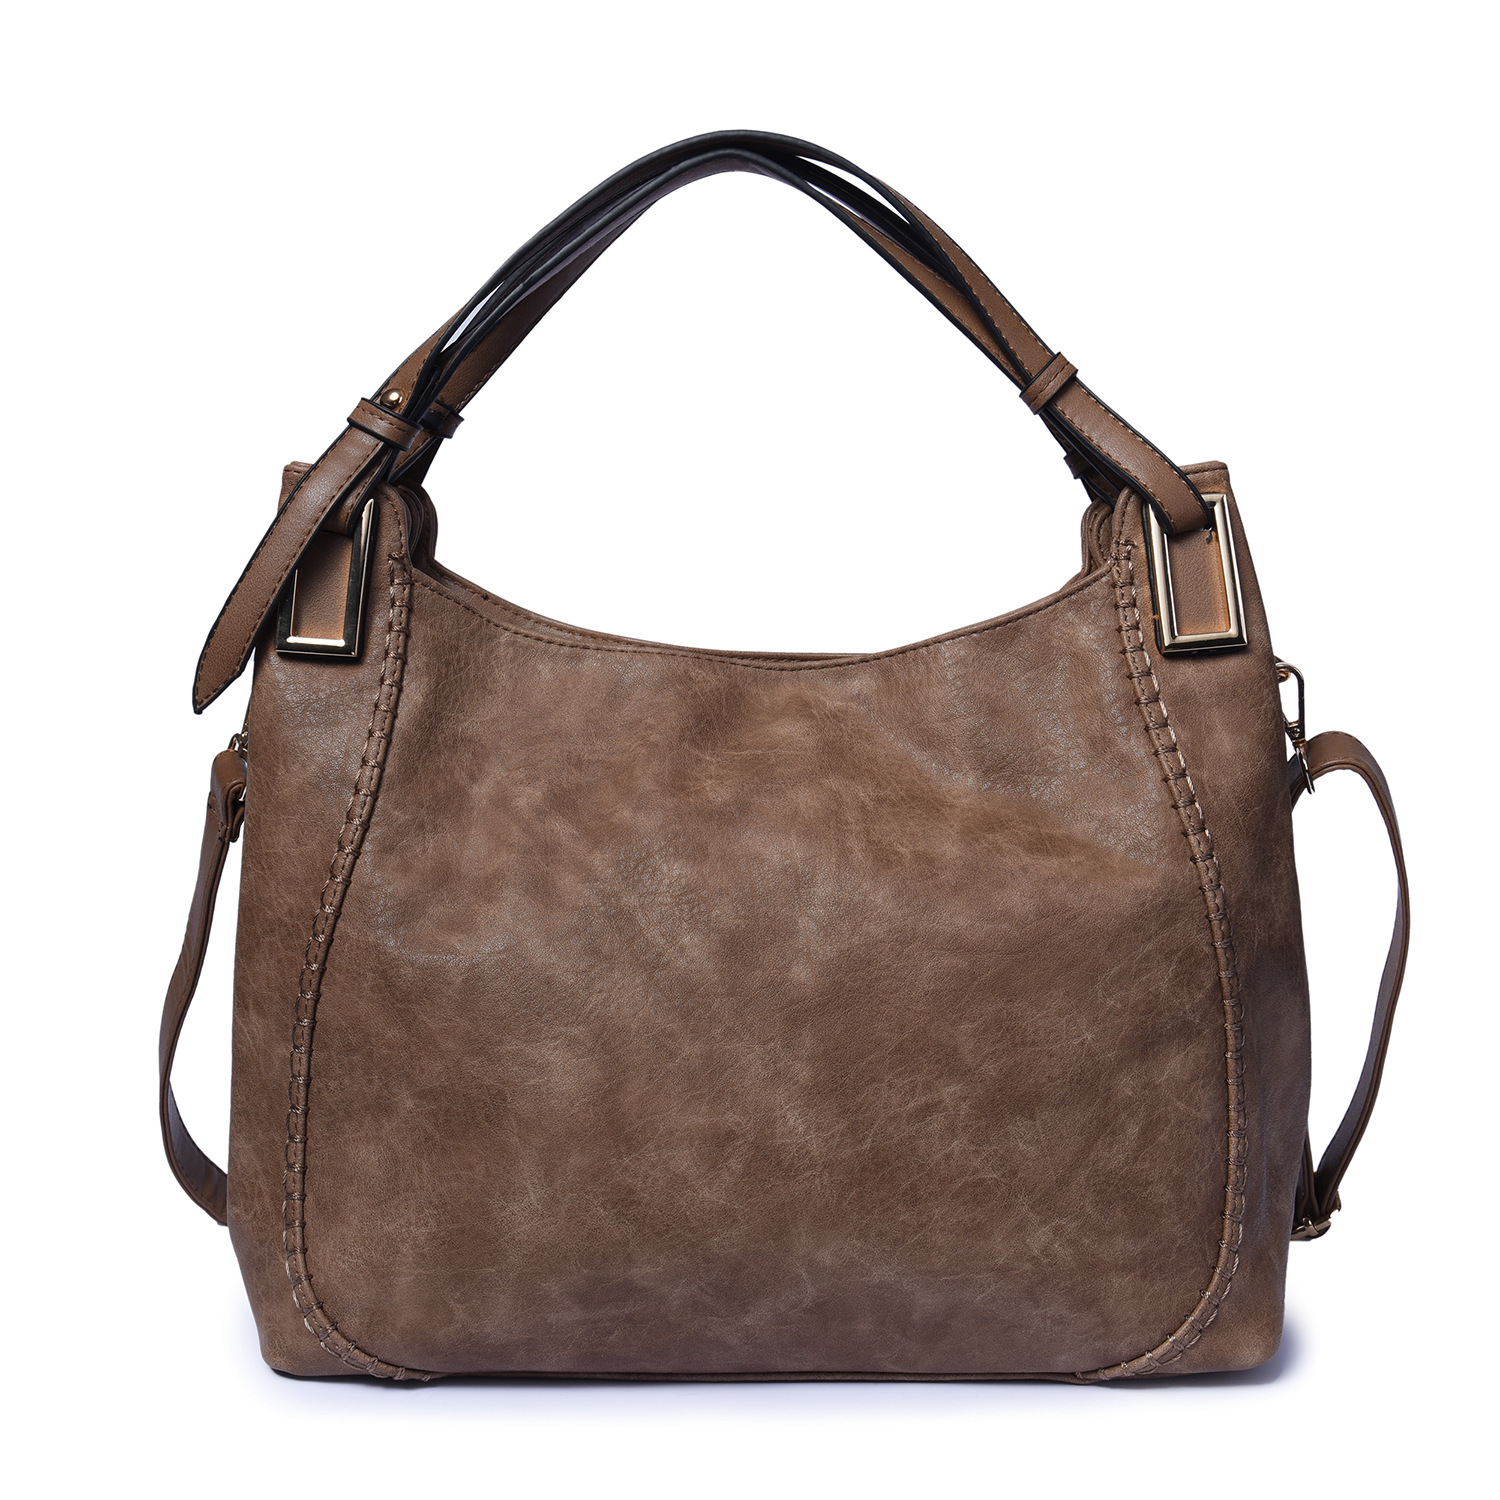 Vintage Women's Hobo Handbags Shoulder Tote Bag Faux Leather Work Office Sling Bag Casual Fossil Purse faux leather minimalist practical 3 pieces tote bag set page 5